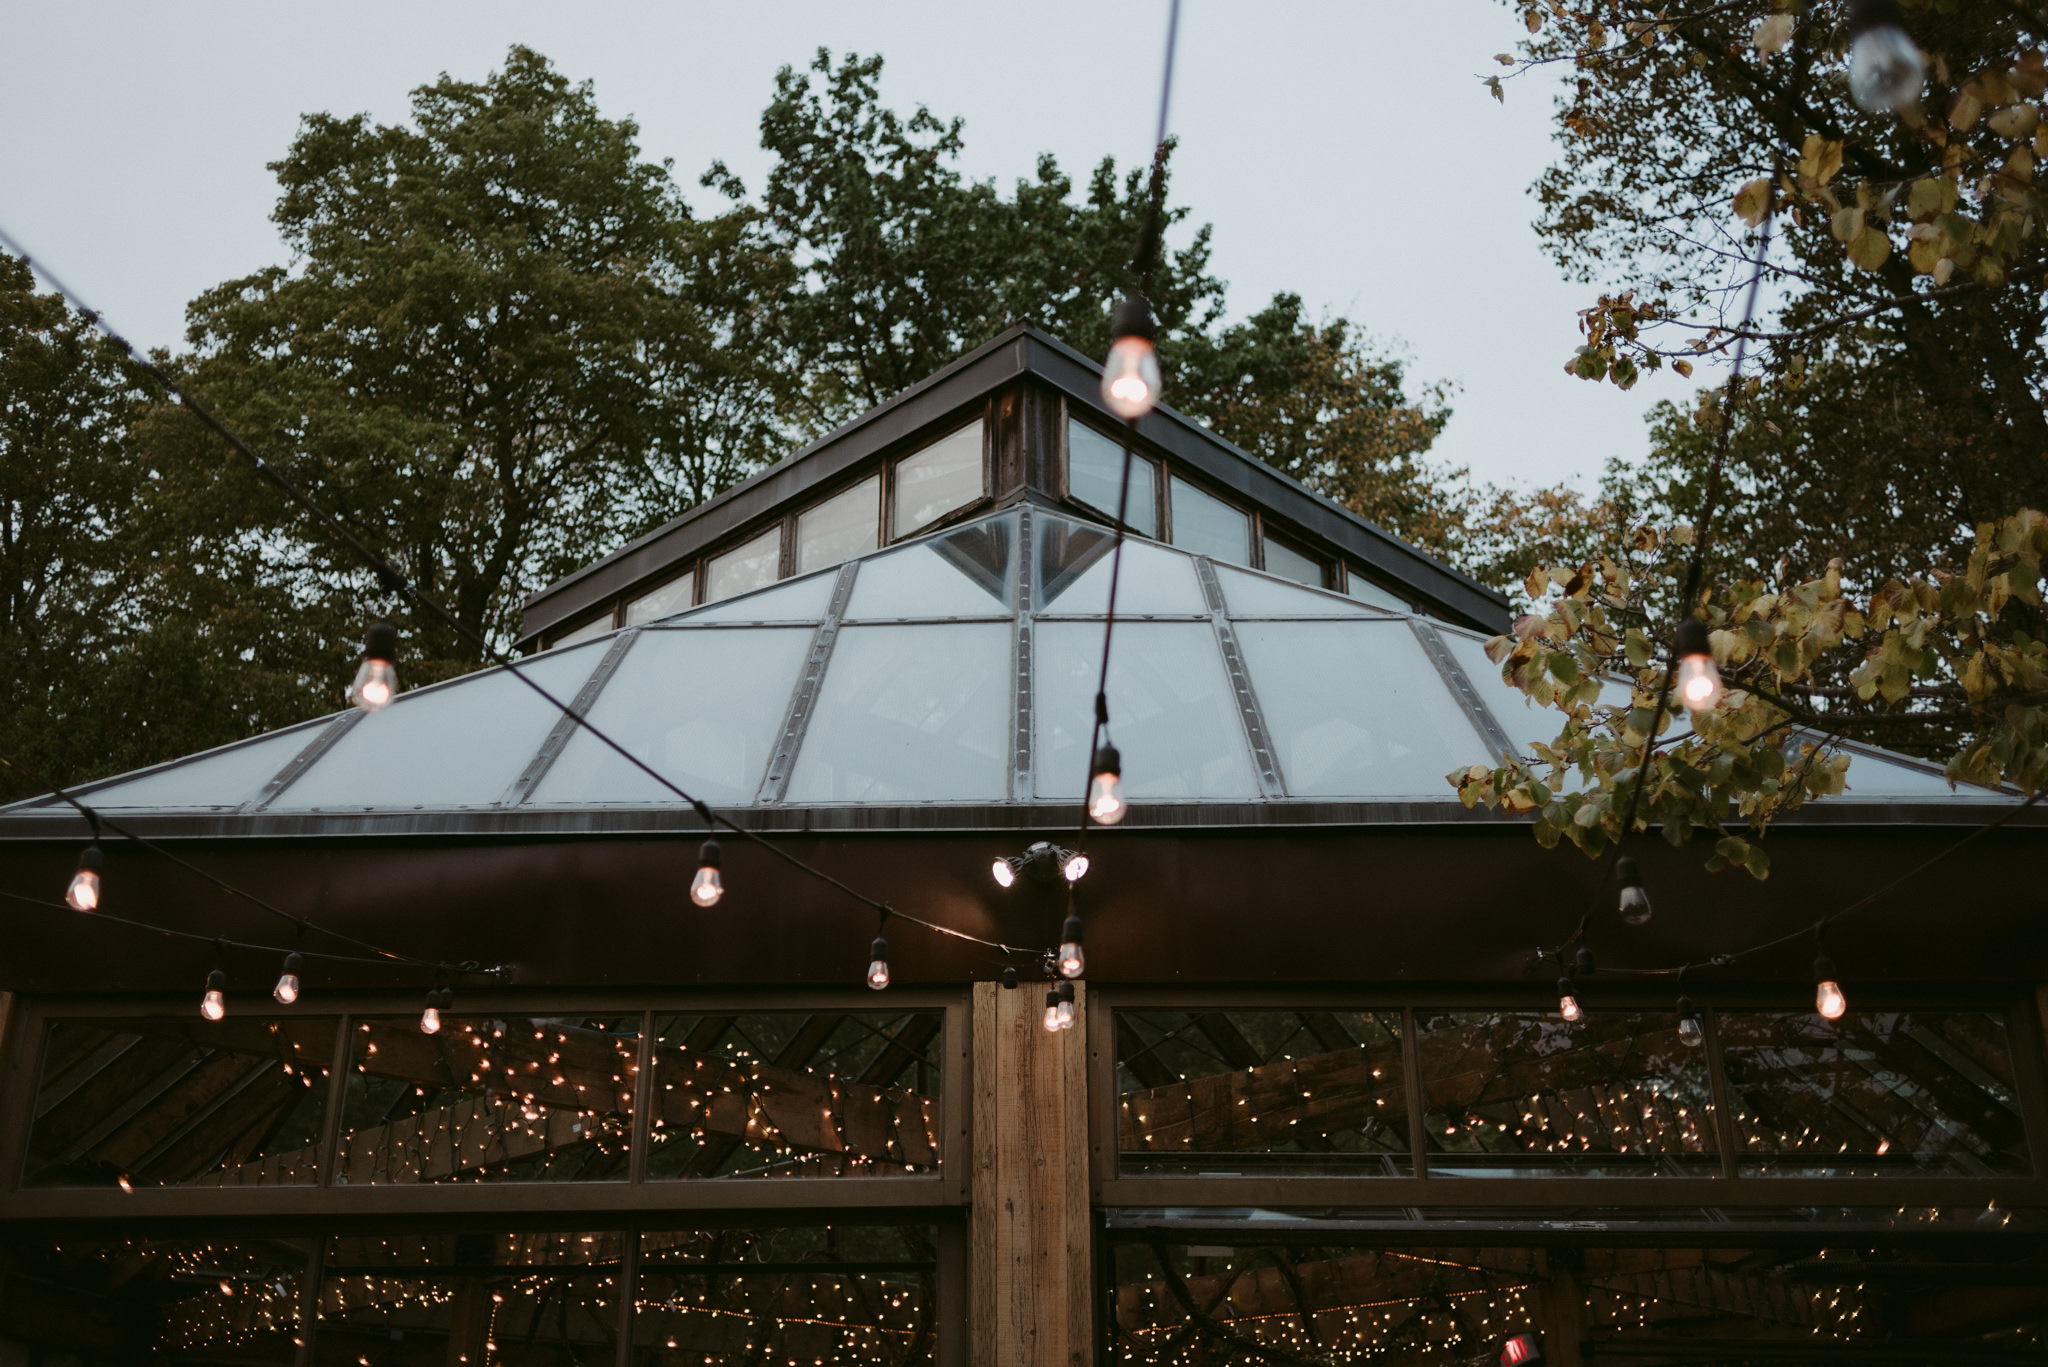 String lights and glass building